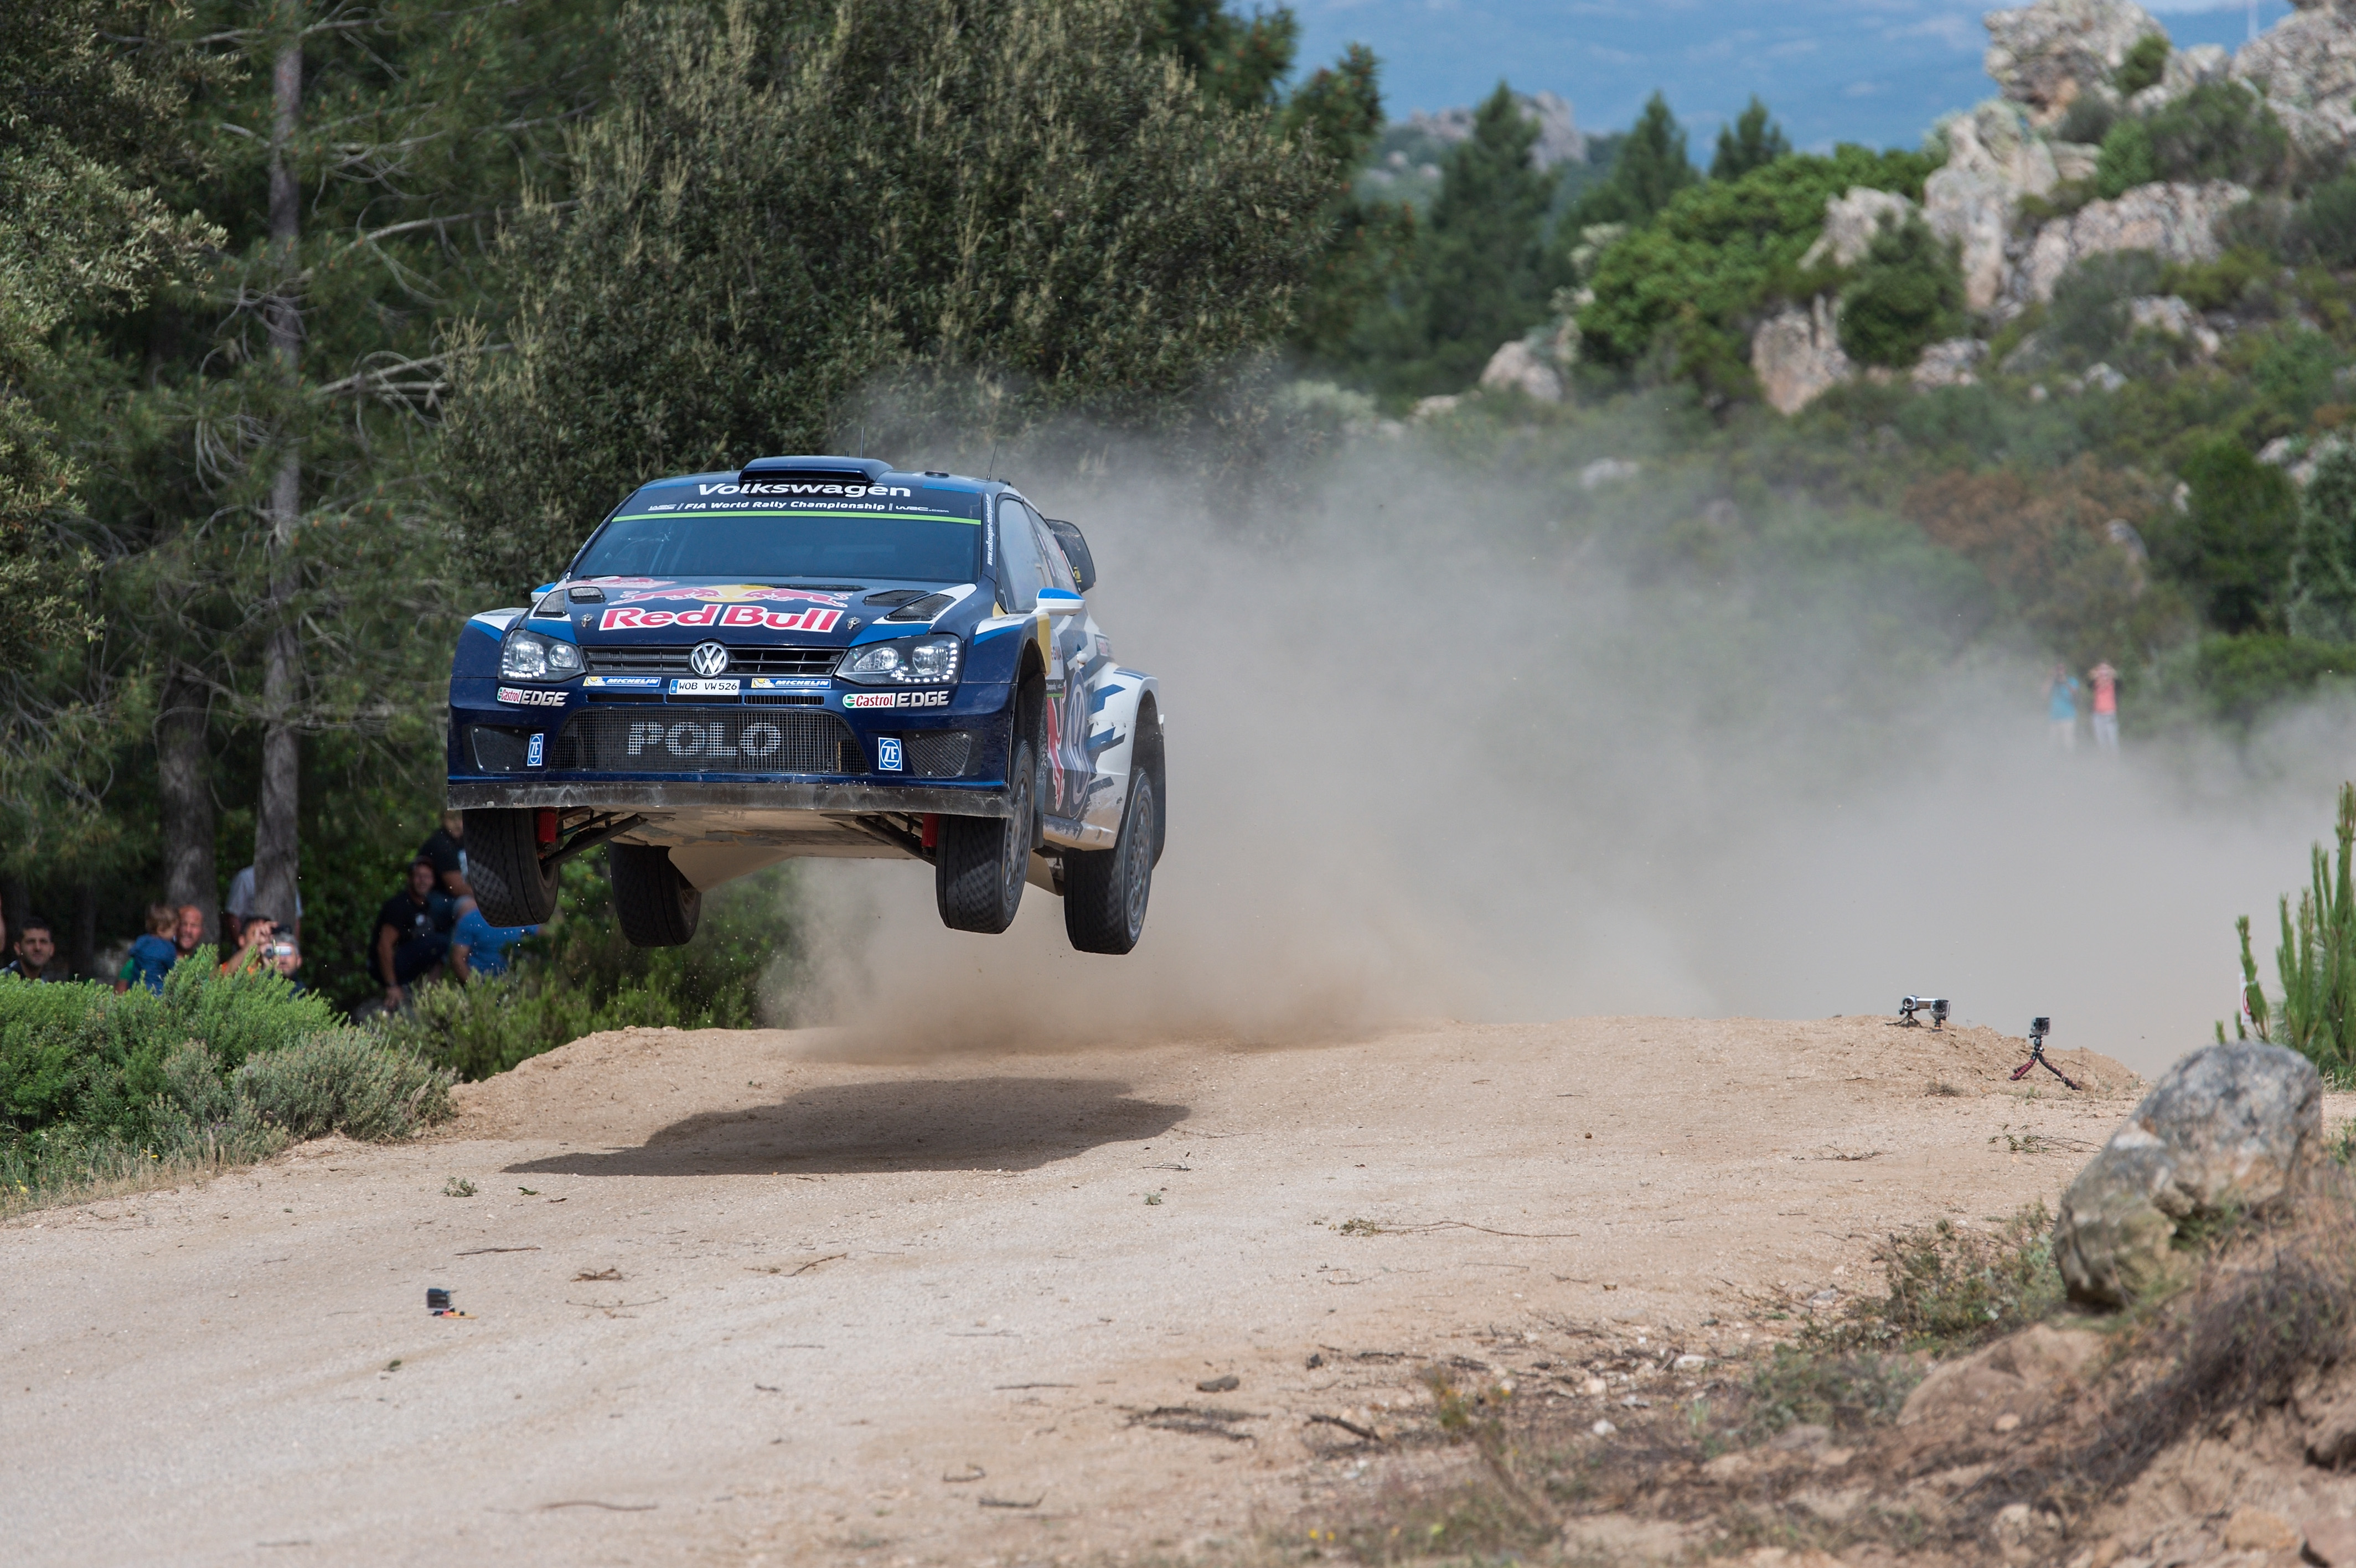 Volkswagen Polo R WRC wins 5th race of FIA World Rally Championship season | MOTRFACE